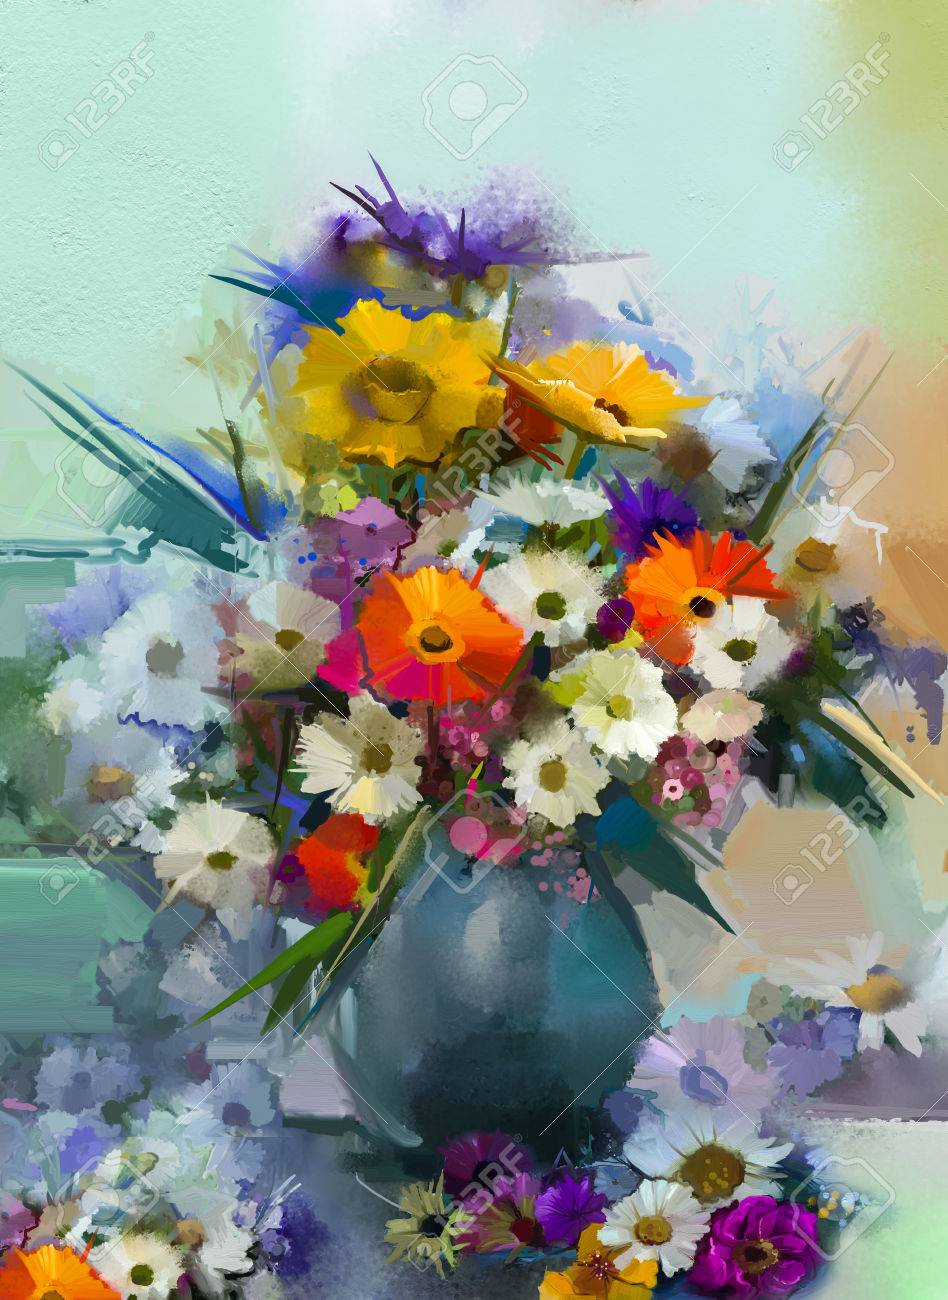 123RF.com & Oil painting flowers in vase. Hand paint still life bouquet..